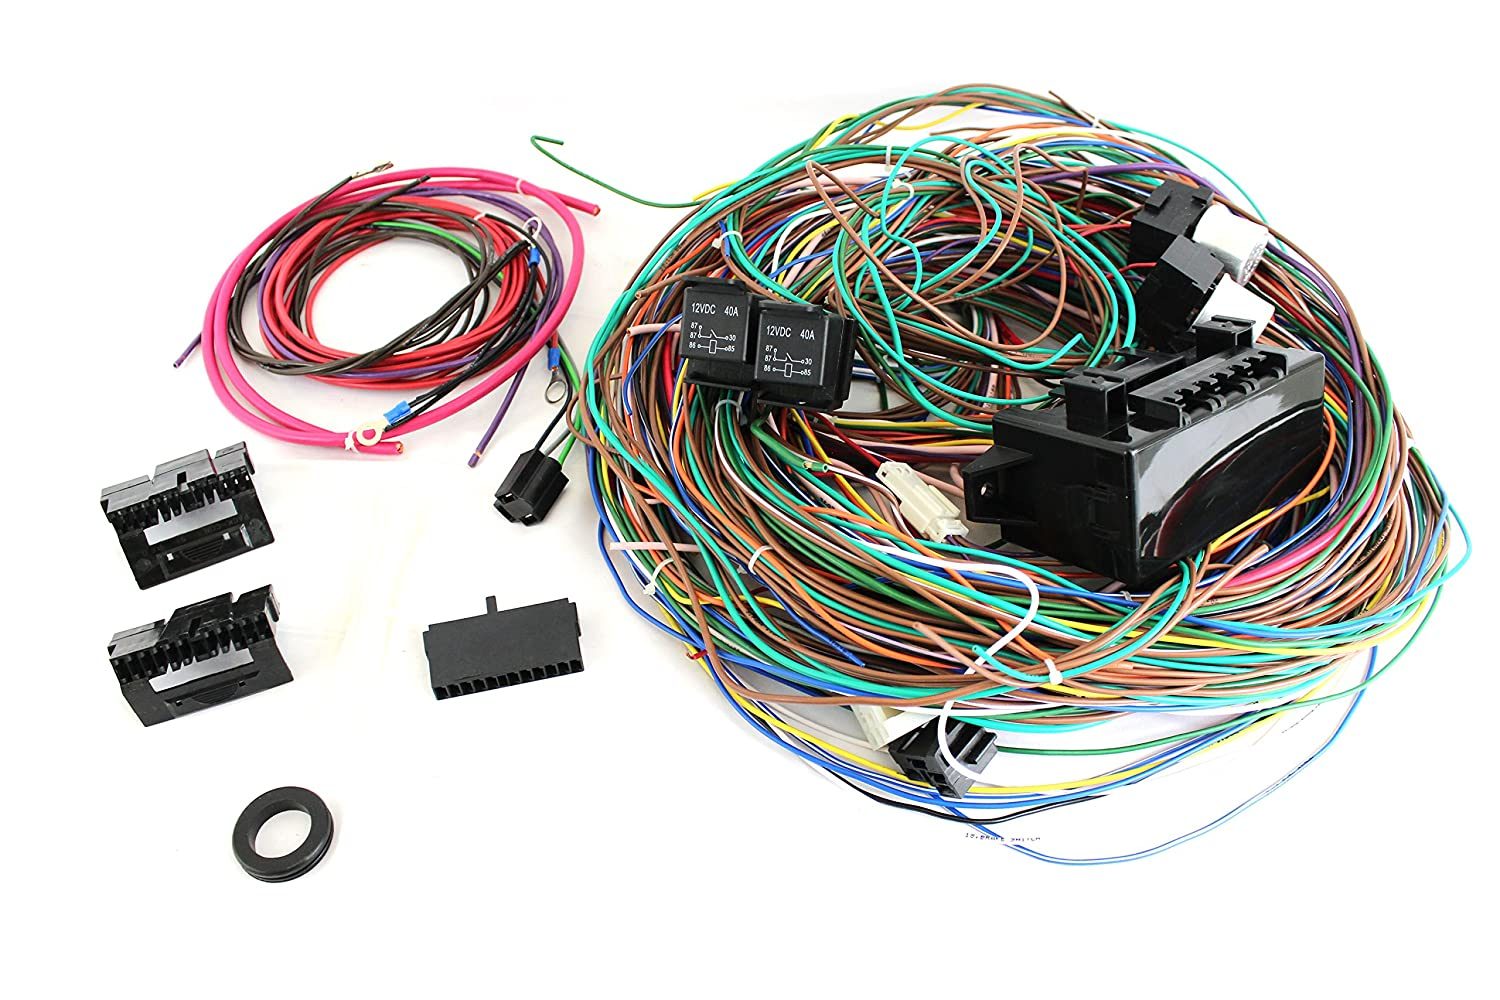 91YoamXFx2L._SL1500_ amazon com 12v 24 circuit 15 fuse street hot rat rod wiring universal hot rod wiring harness at mifinder.co